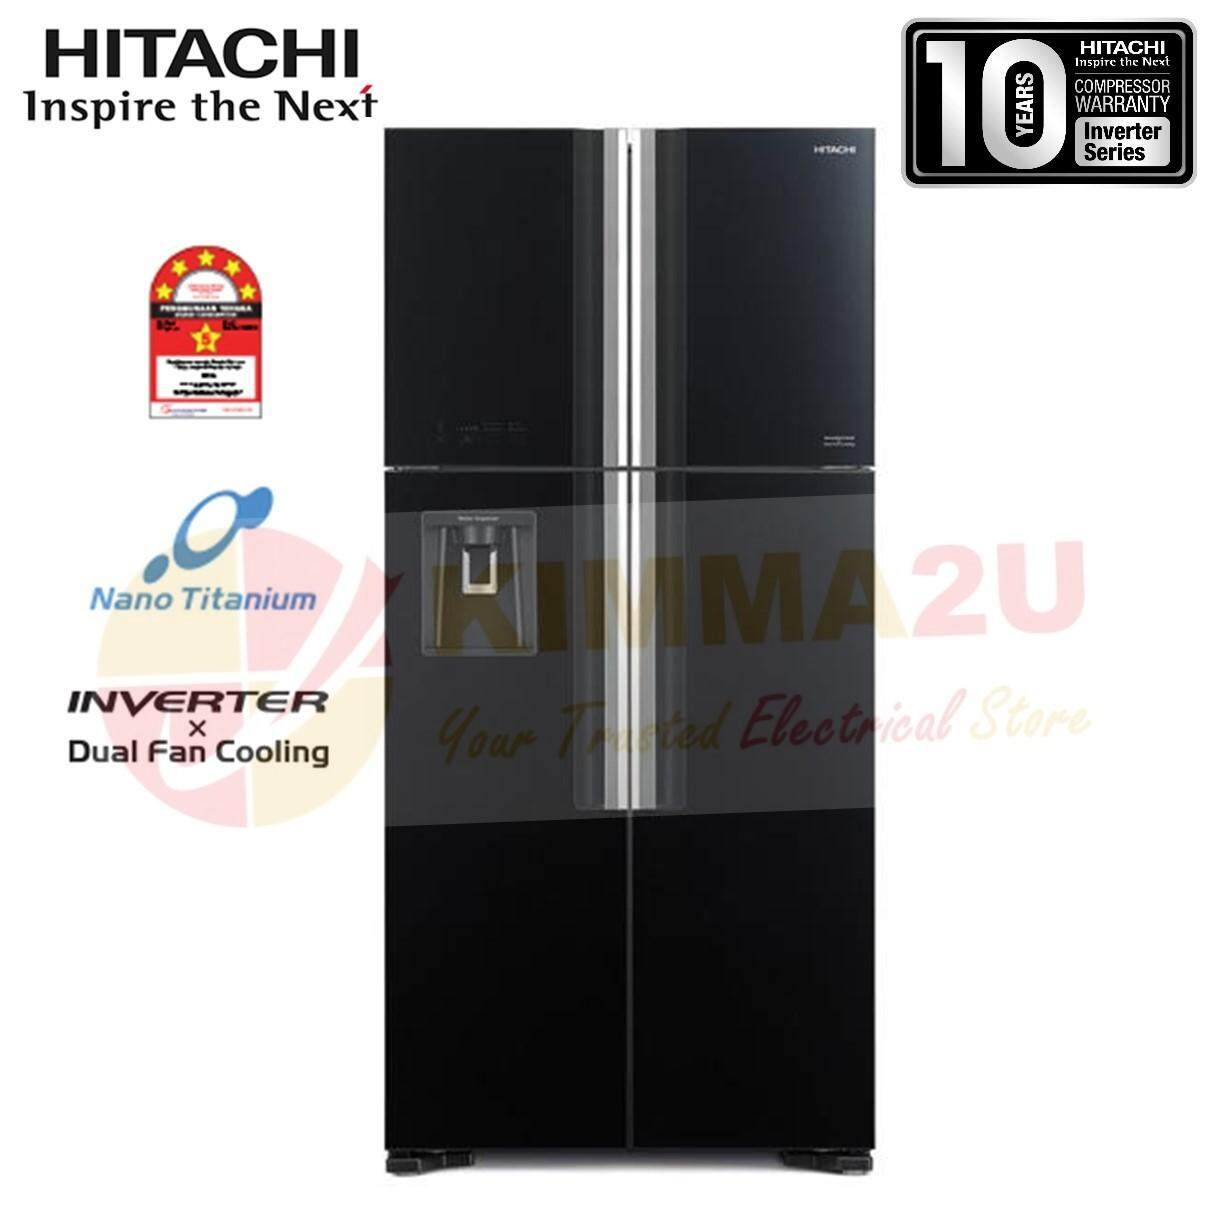 HITACHI JAPAN R-W720P7M GBK 586L INVERTER 4 GLASS DOOR BIG FRENCH REFRIGERATOR *DELIVERY WITHIN KLANG VALLEY ONLY